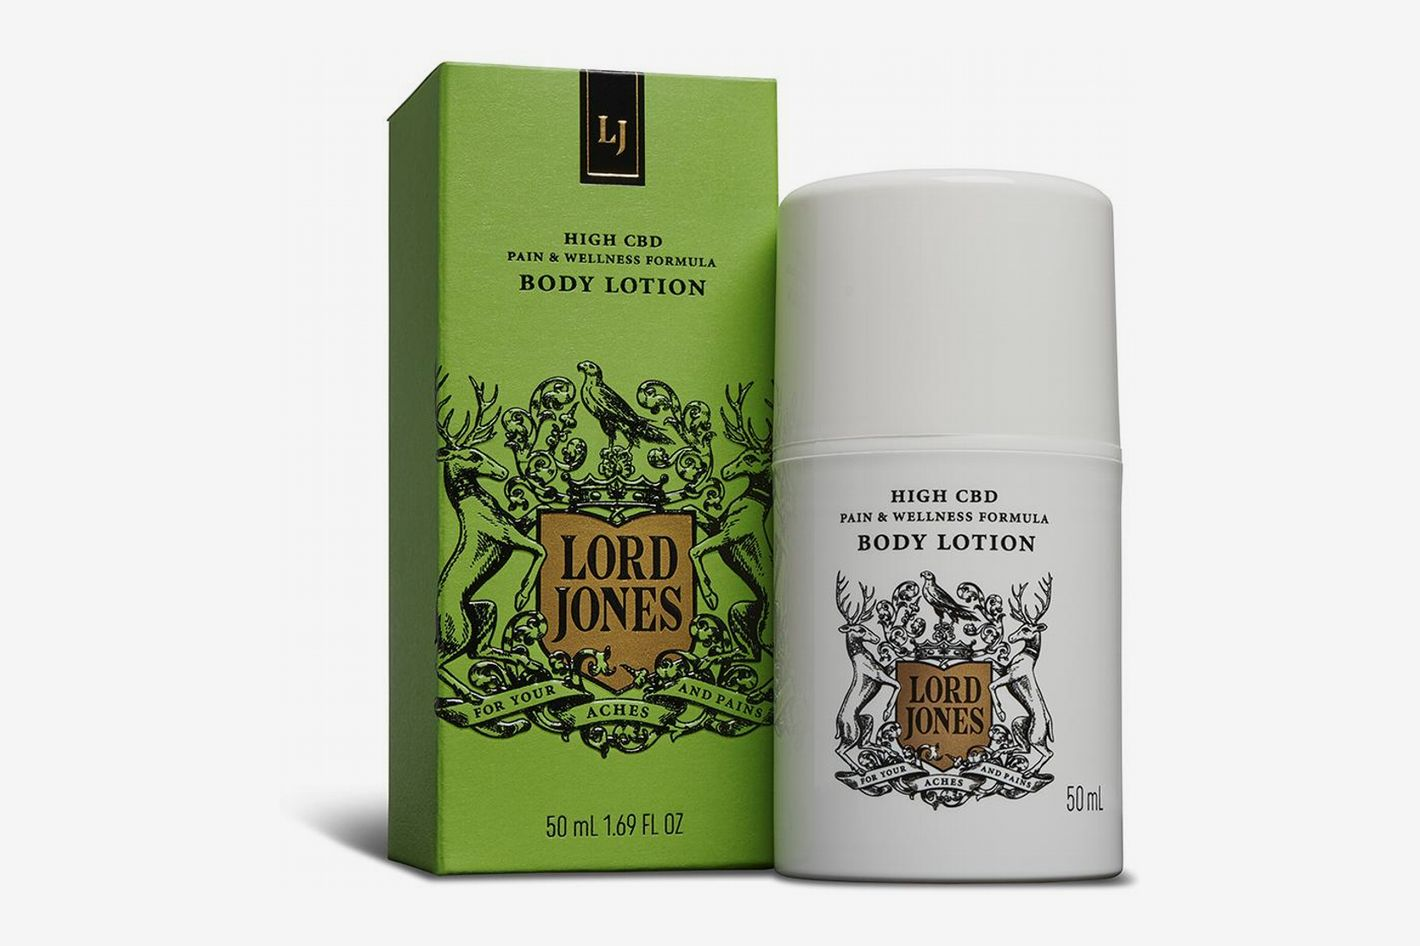 Lord Jones High CBD Formula Body Lotion